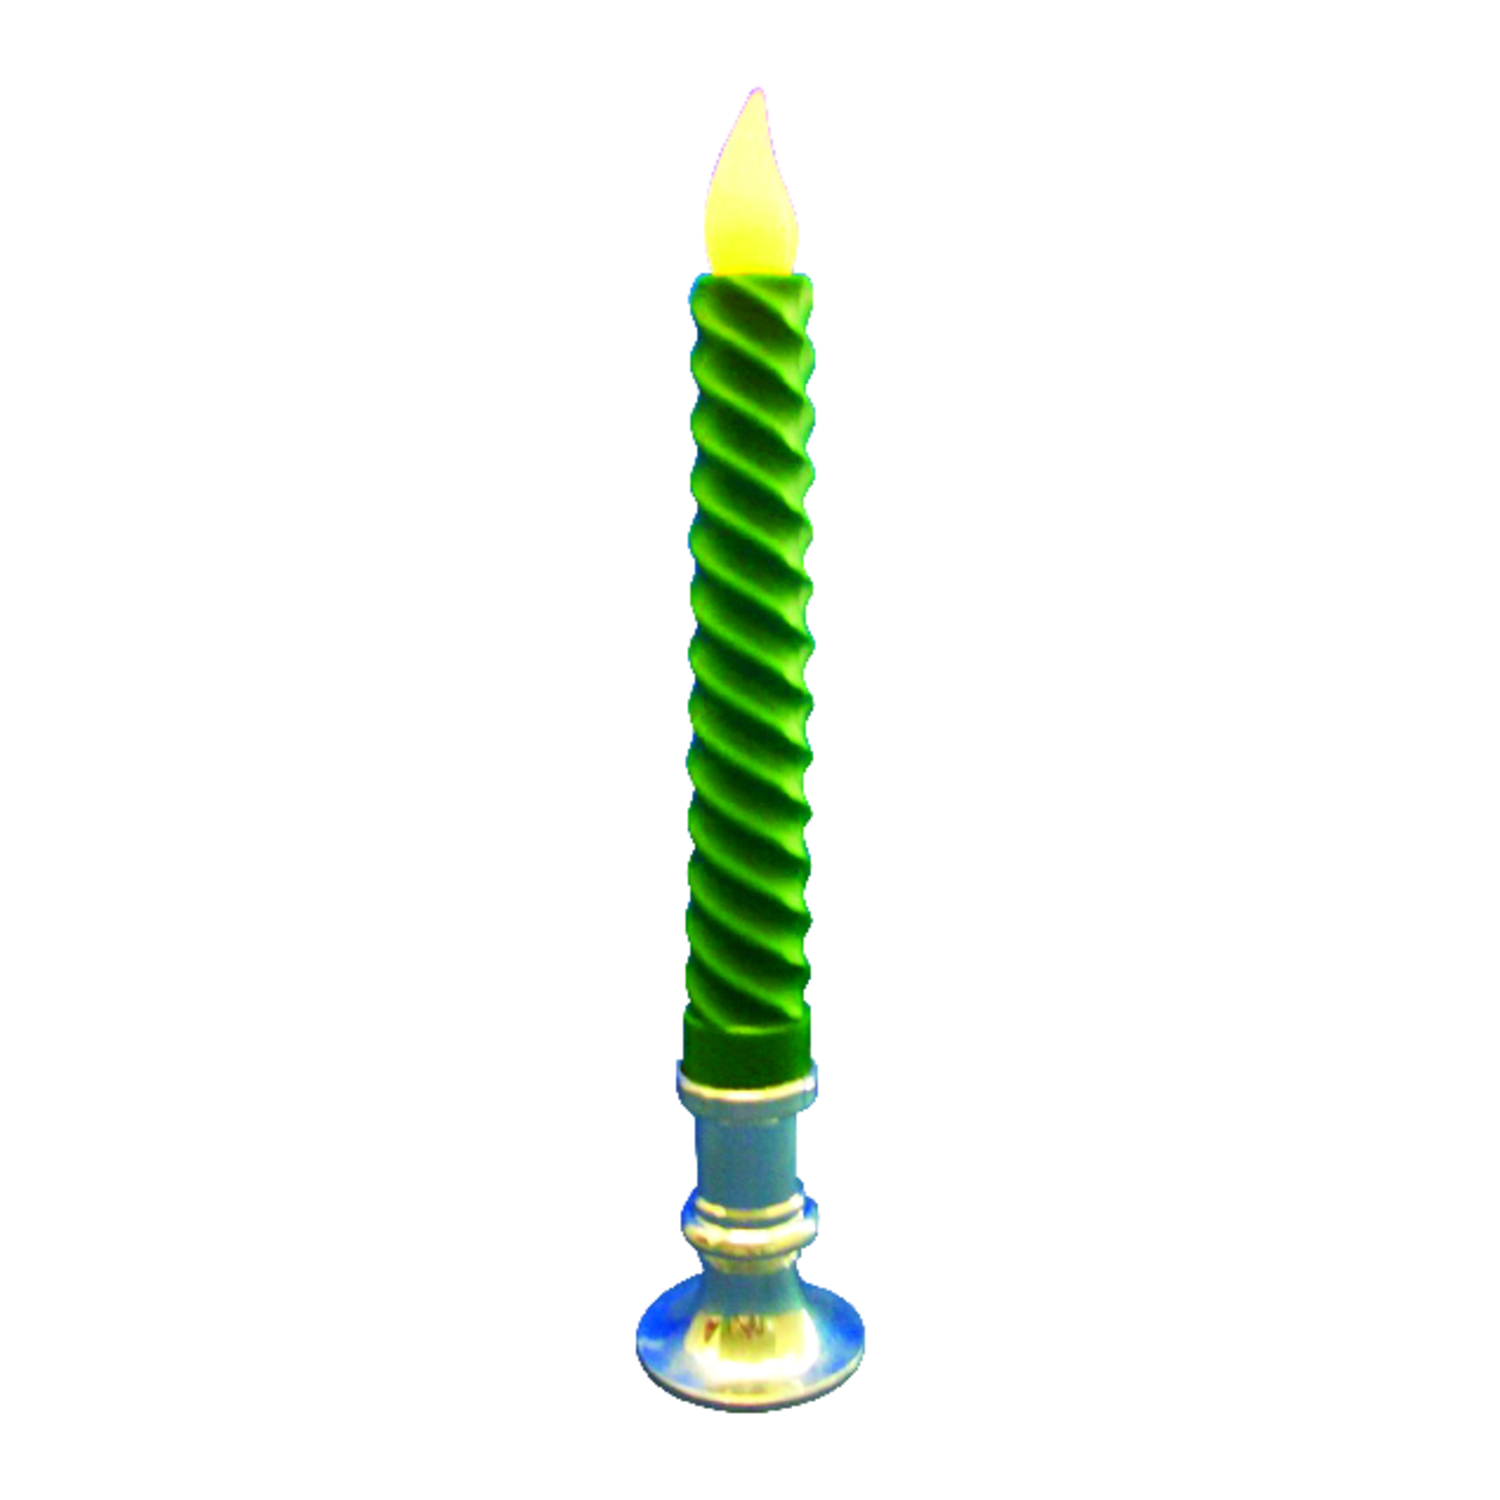 Celebrations  LED  Flameless  Candle  Green  1 lights